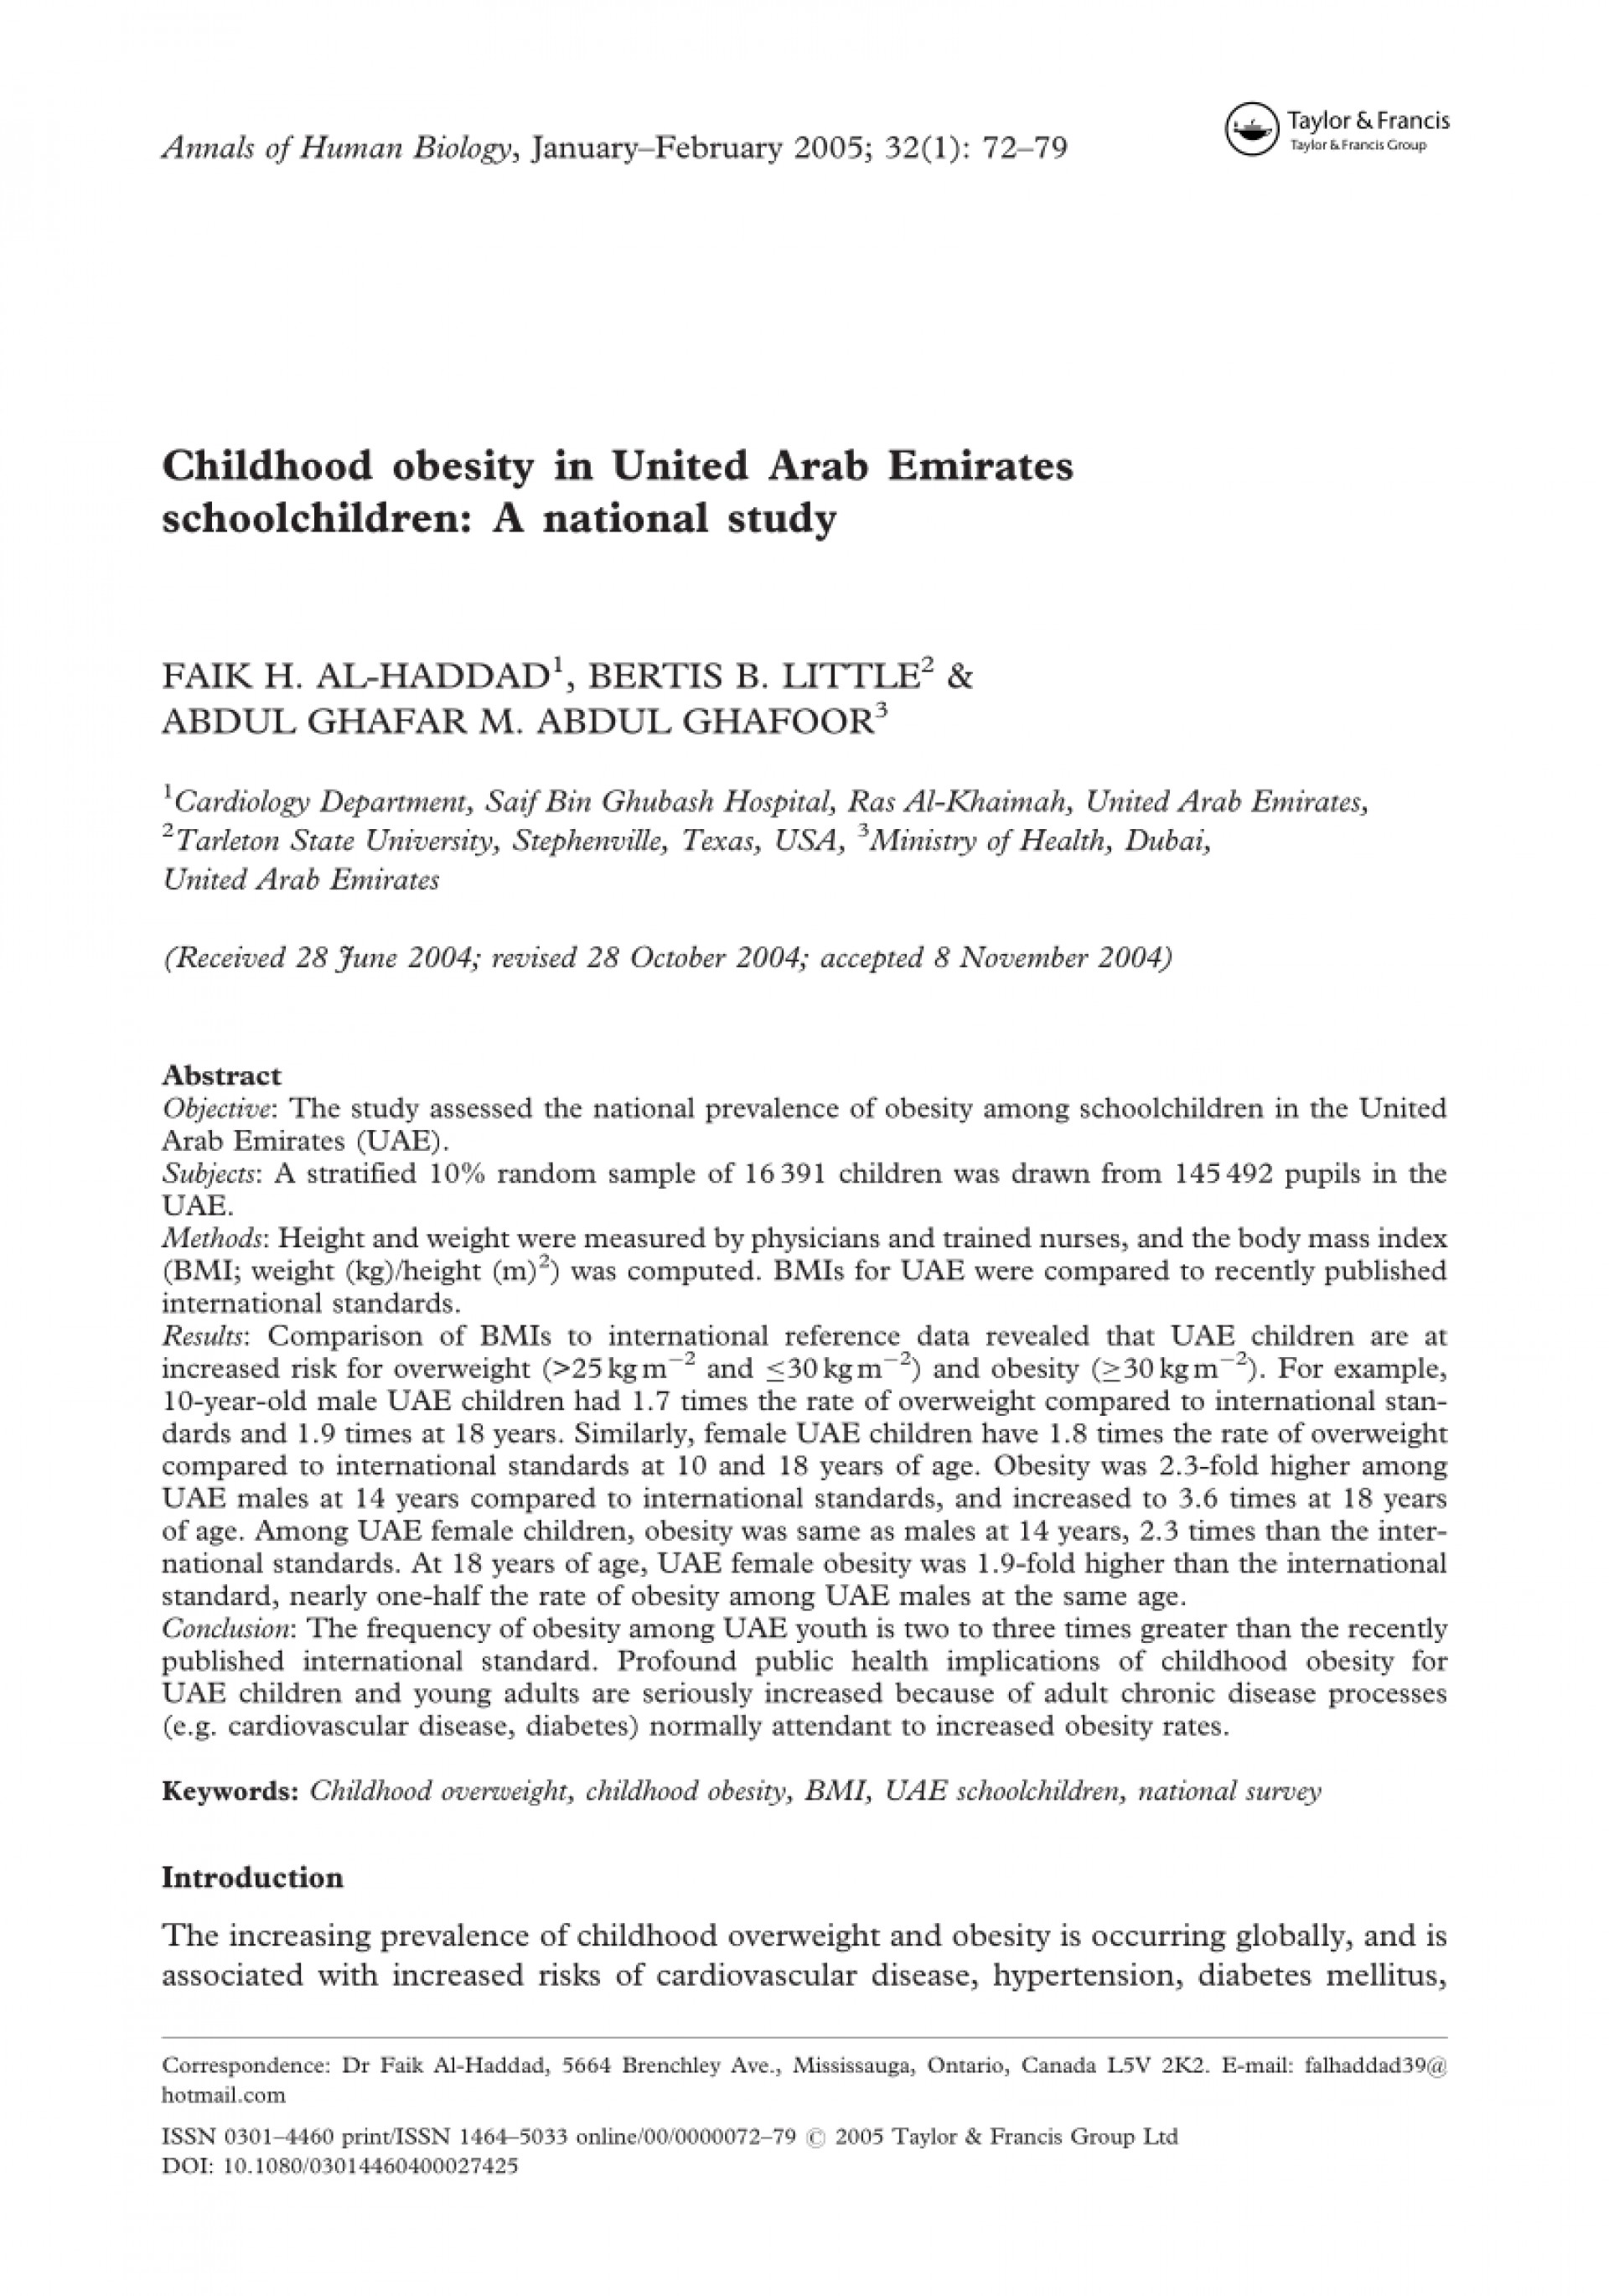 014 Childhood Obesity Research Paper Example Unique 1920